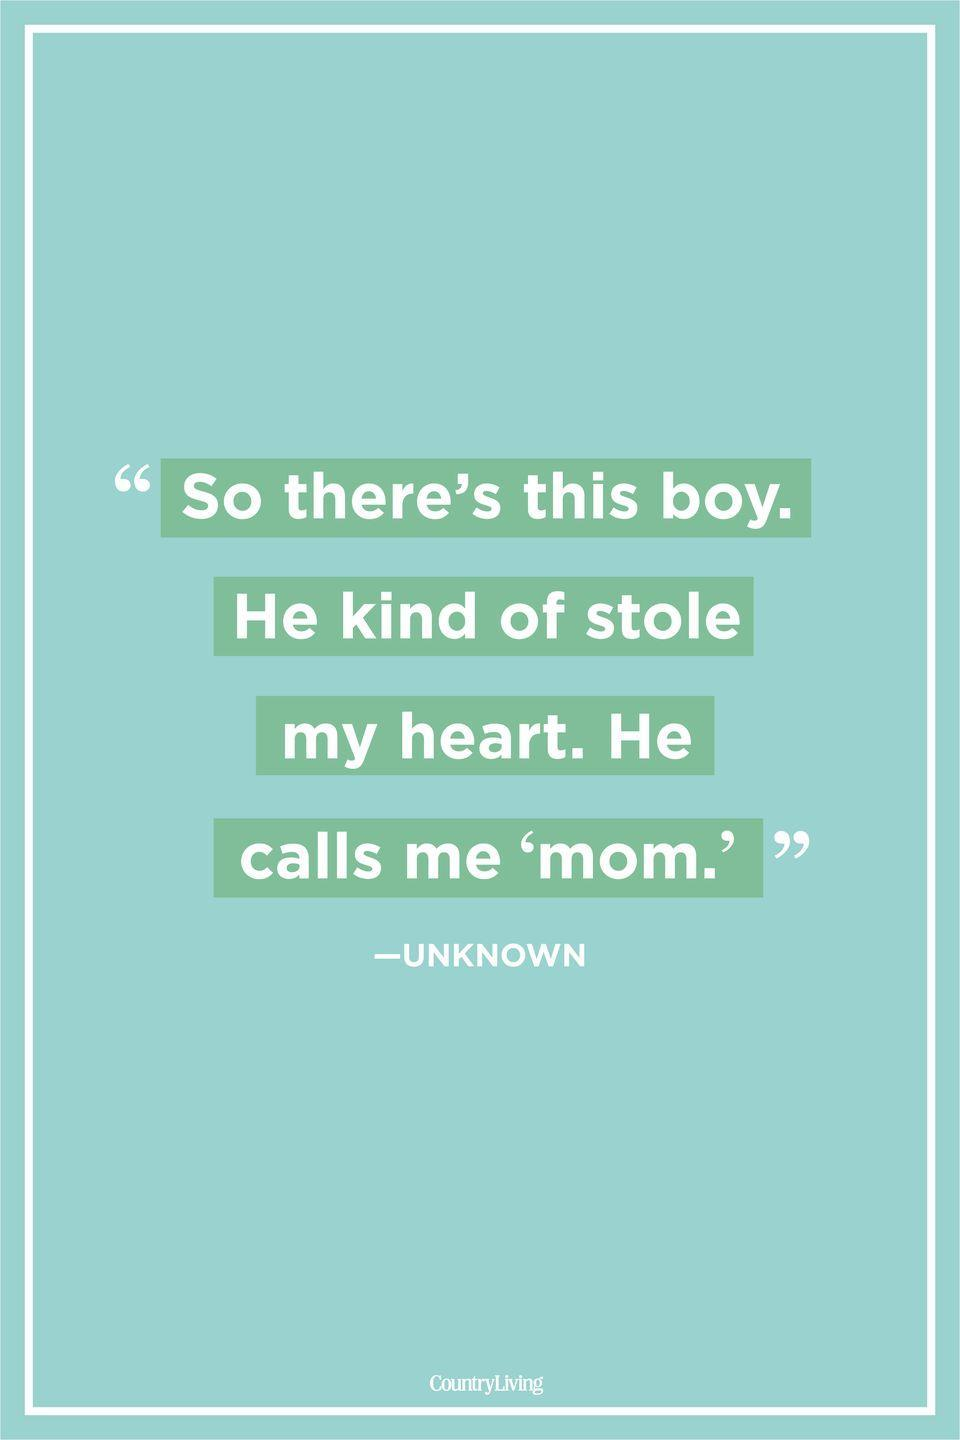 "<p>""So there's this boy. He kind of stole my heart. He calls me 'mom.'"" </p>"